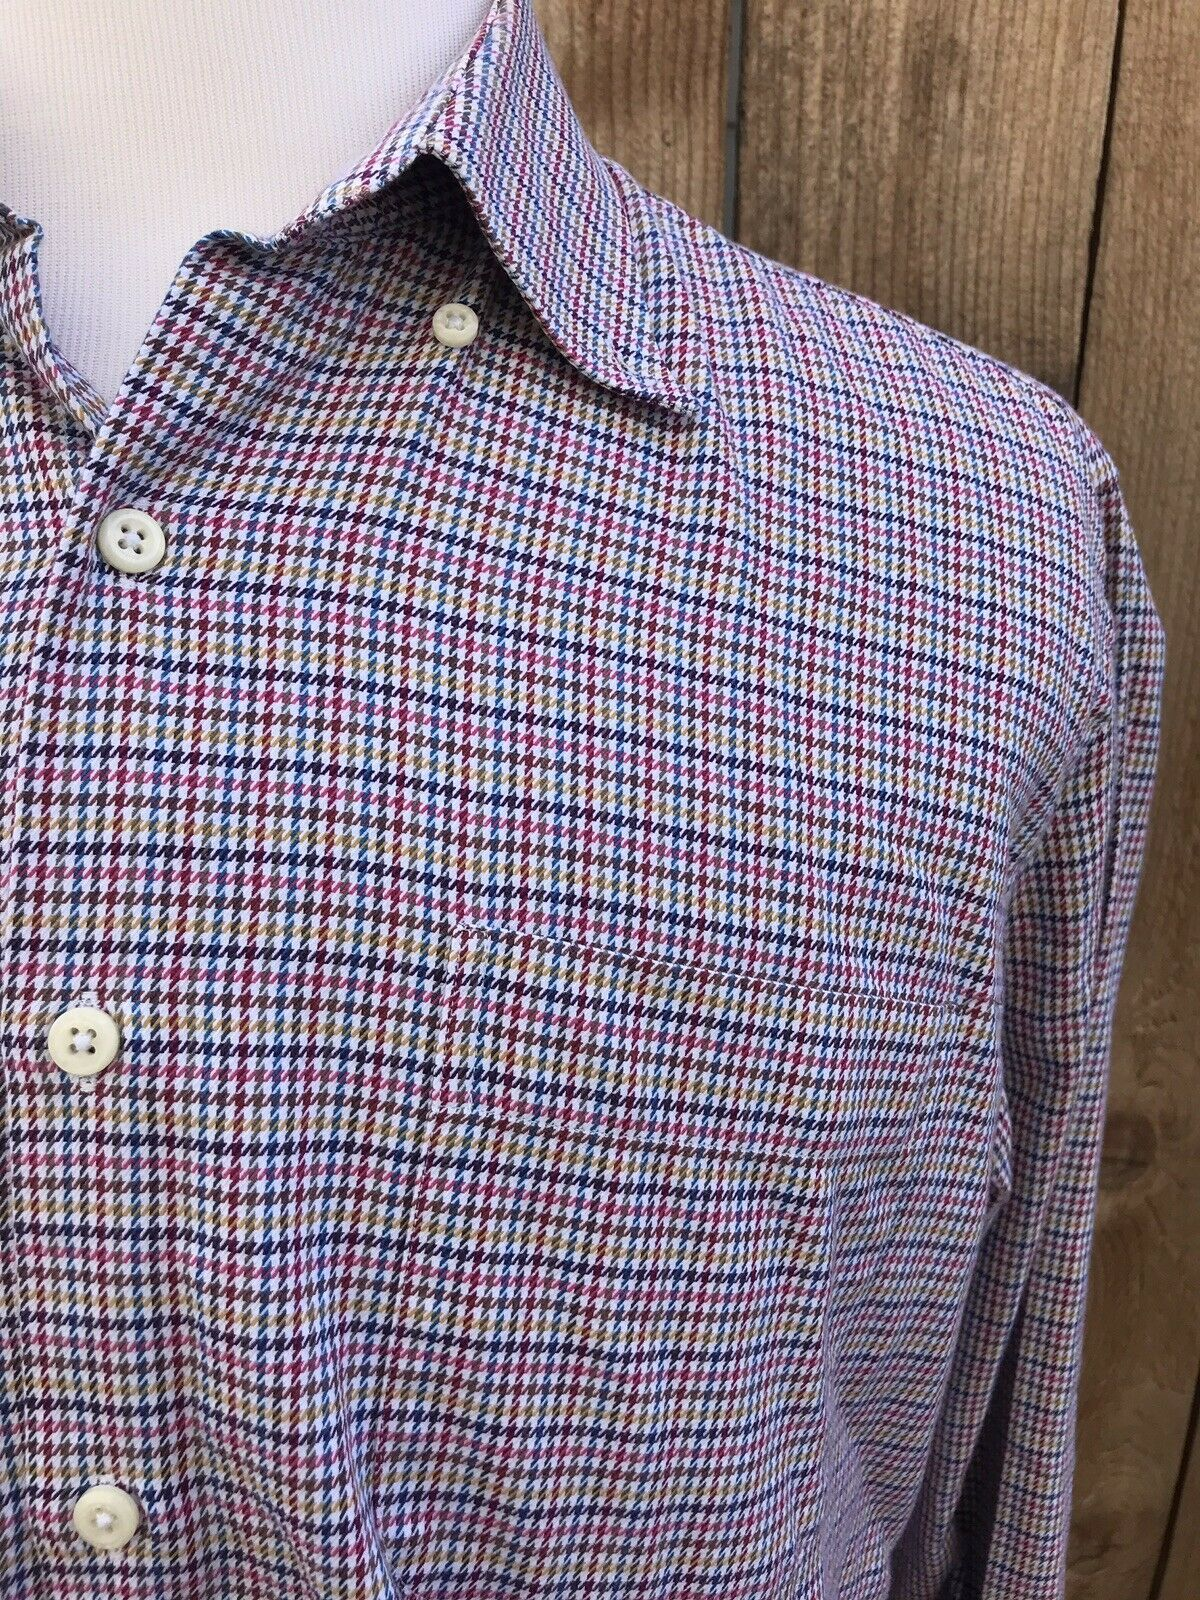 9a8180c1 Peter Millar Multi colord Houndstooth Men's 100% Cotton Shirt Size Large